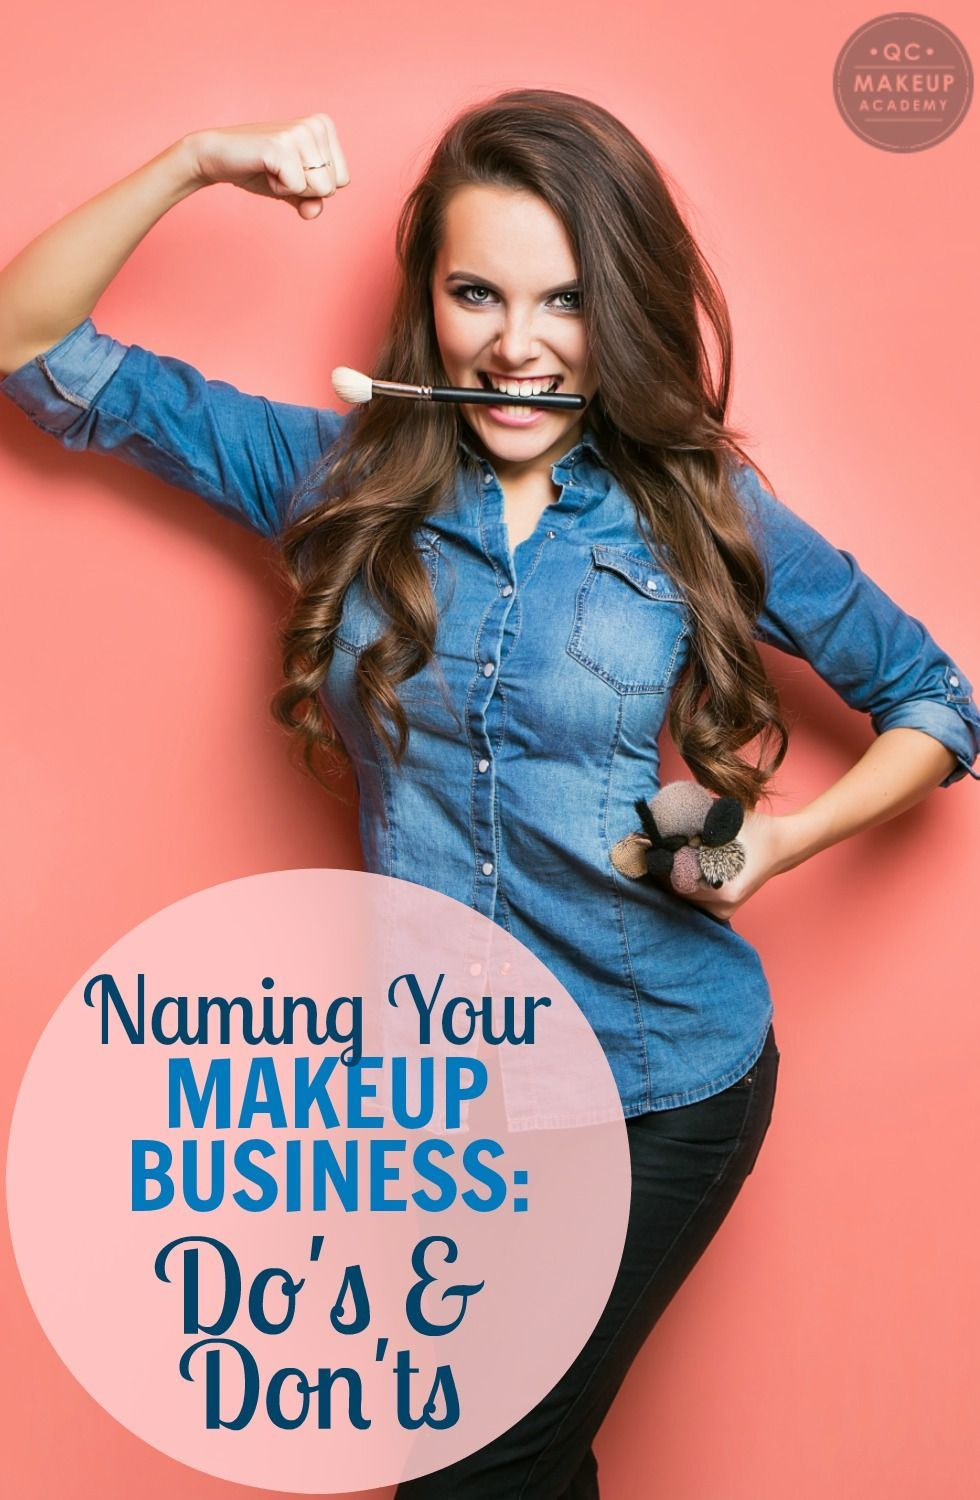 If You Re Thinking Of Starting Your Own Makeup Business Makeup Artist Names Makeup Business Names Freelance Makeup Artist Business